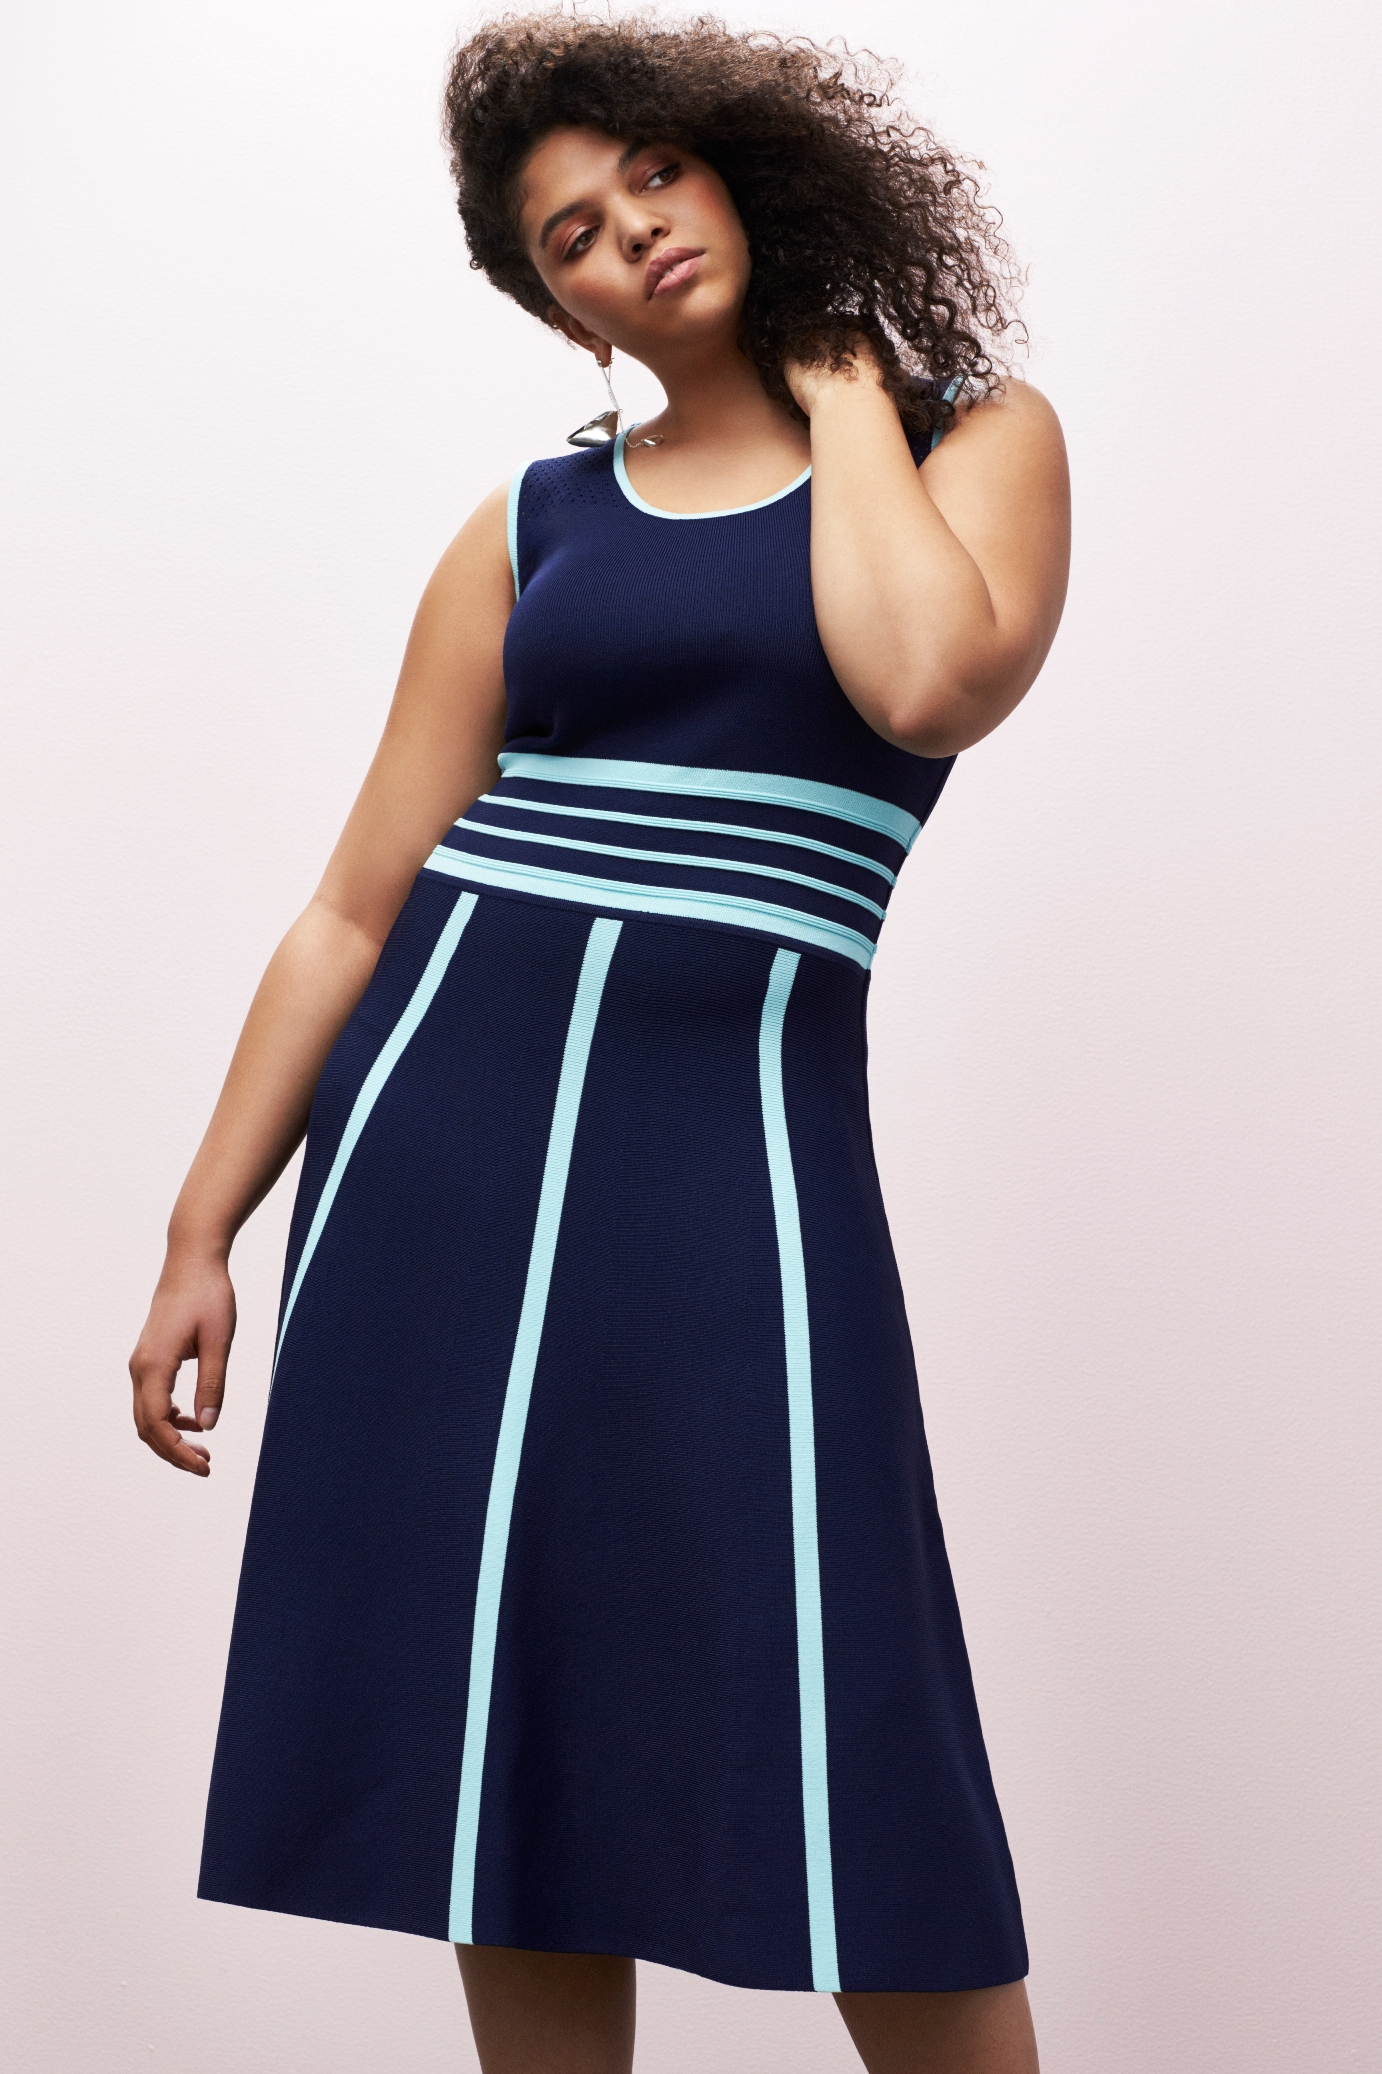 9b5ddcf2ba73 Prabal Gurung Puts Plus Size First in His New Lane Bryant Collection ...